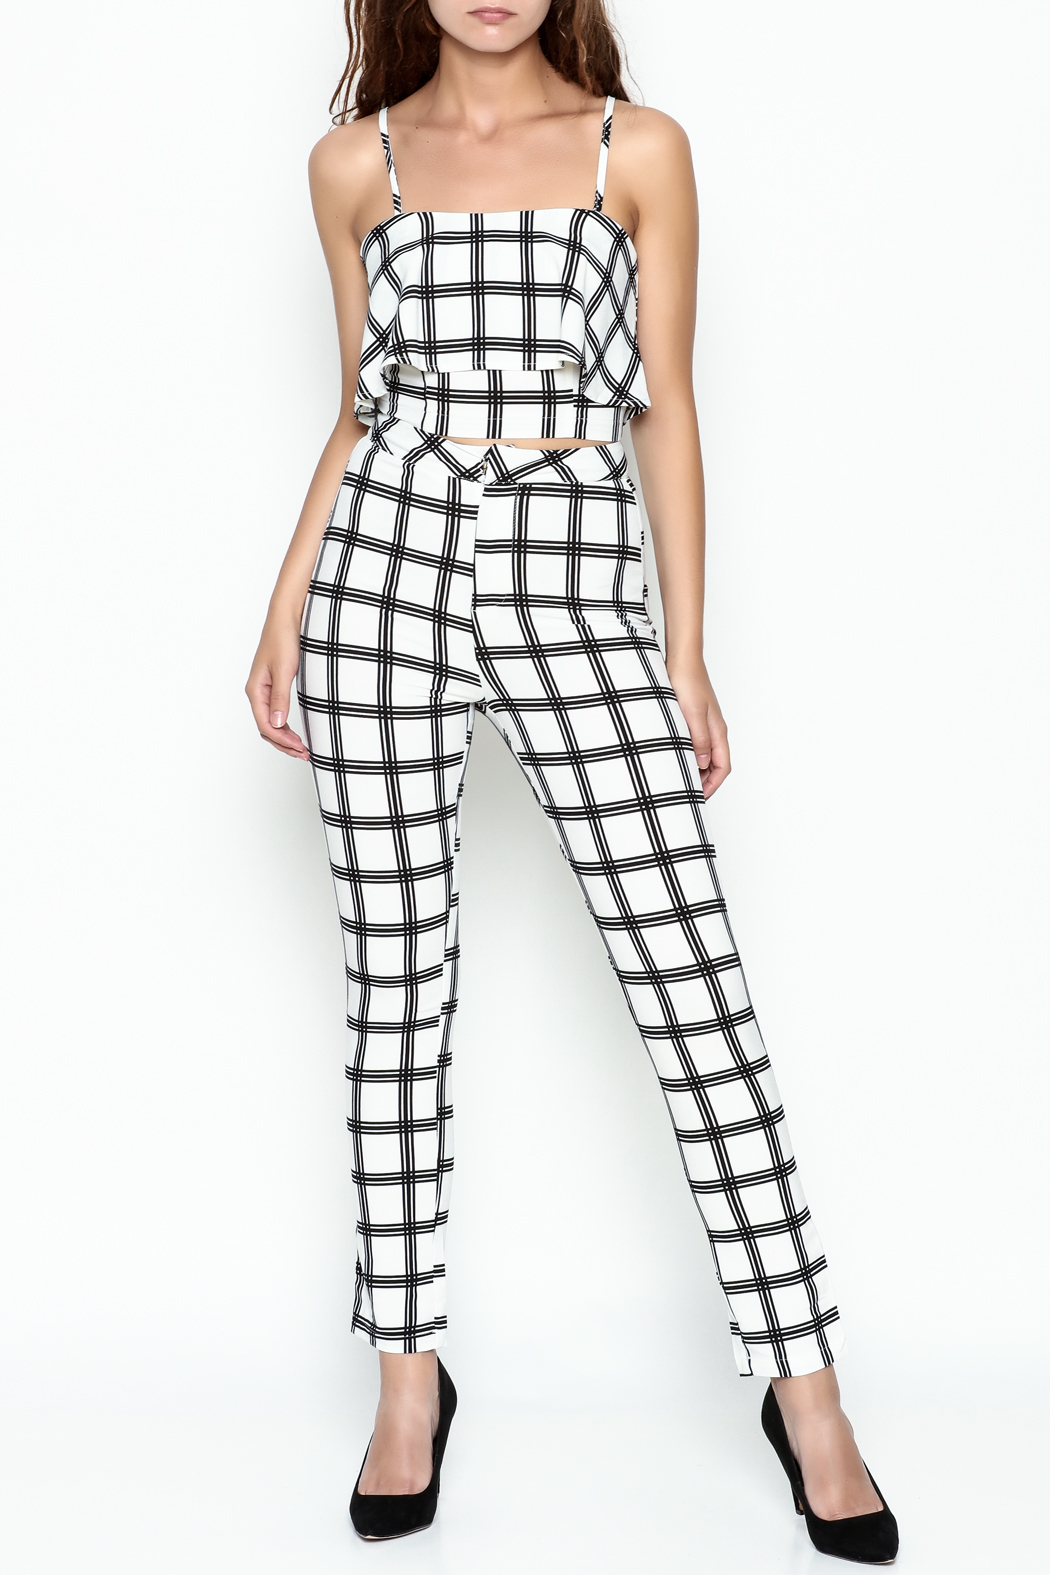 luxxel Gridlines Pant Set - Front Cropped Image